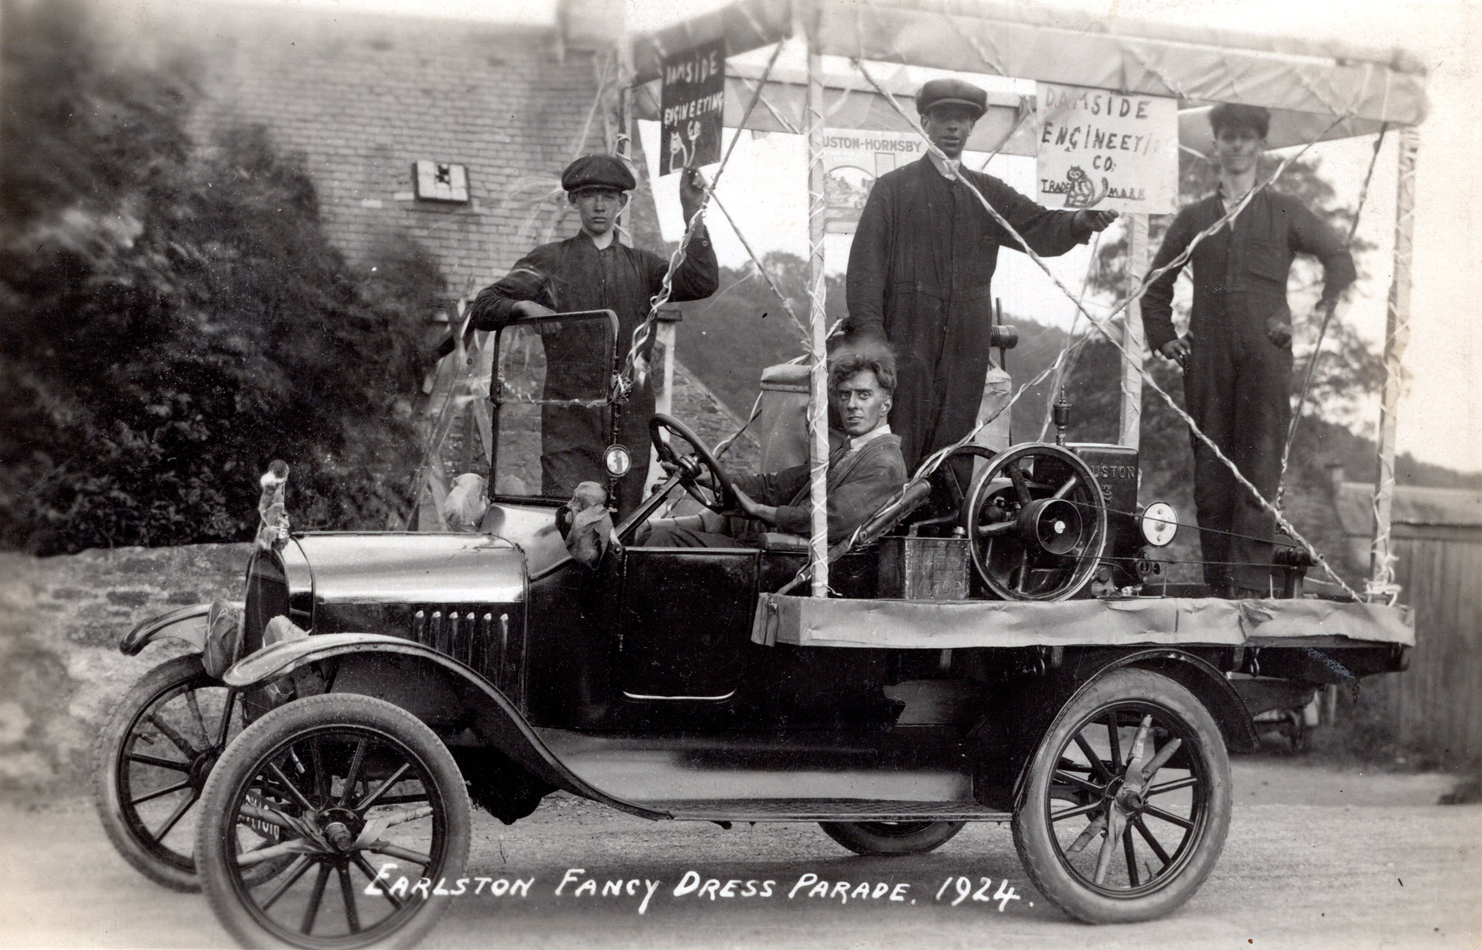 Earlston Fancy Dress Parade Float 1924